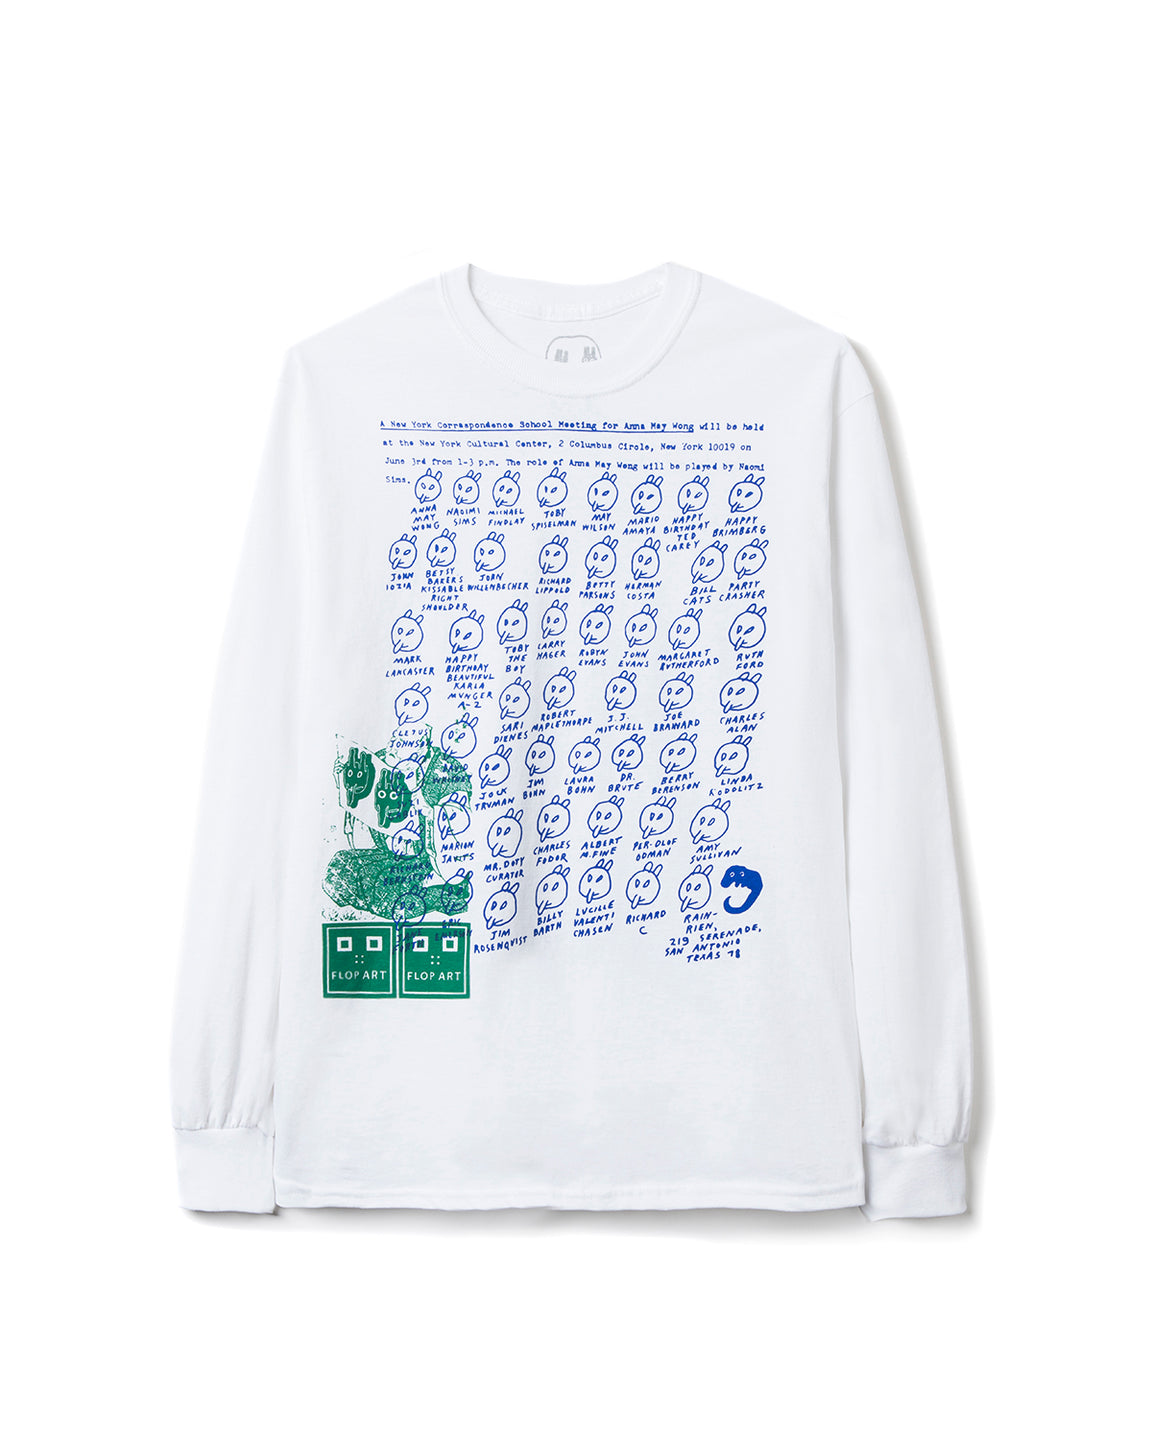 Ray Johnson Estate x Brain Dead Long Sleeve Tee - White